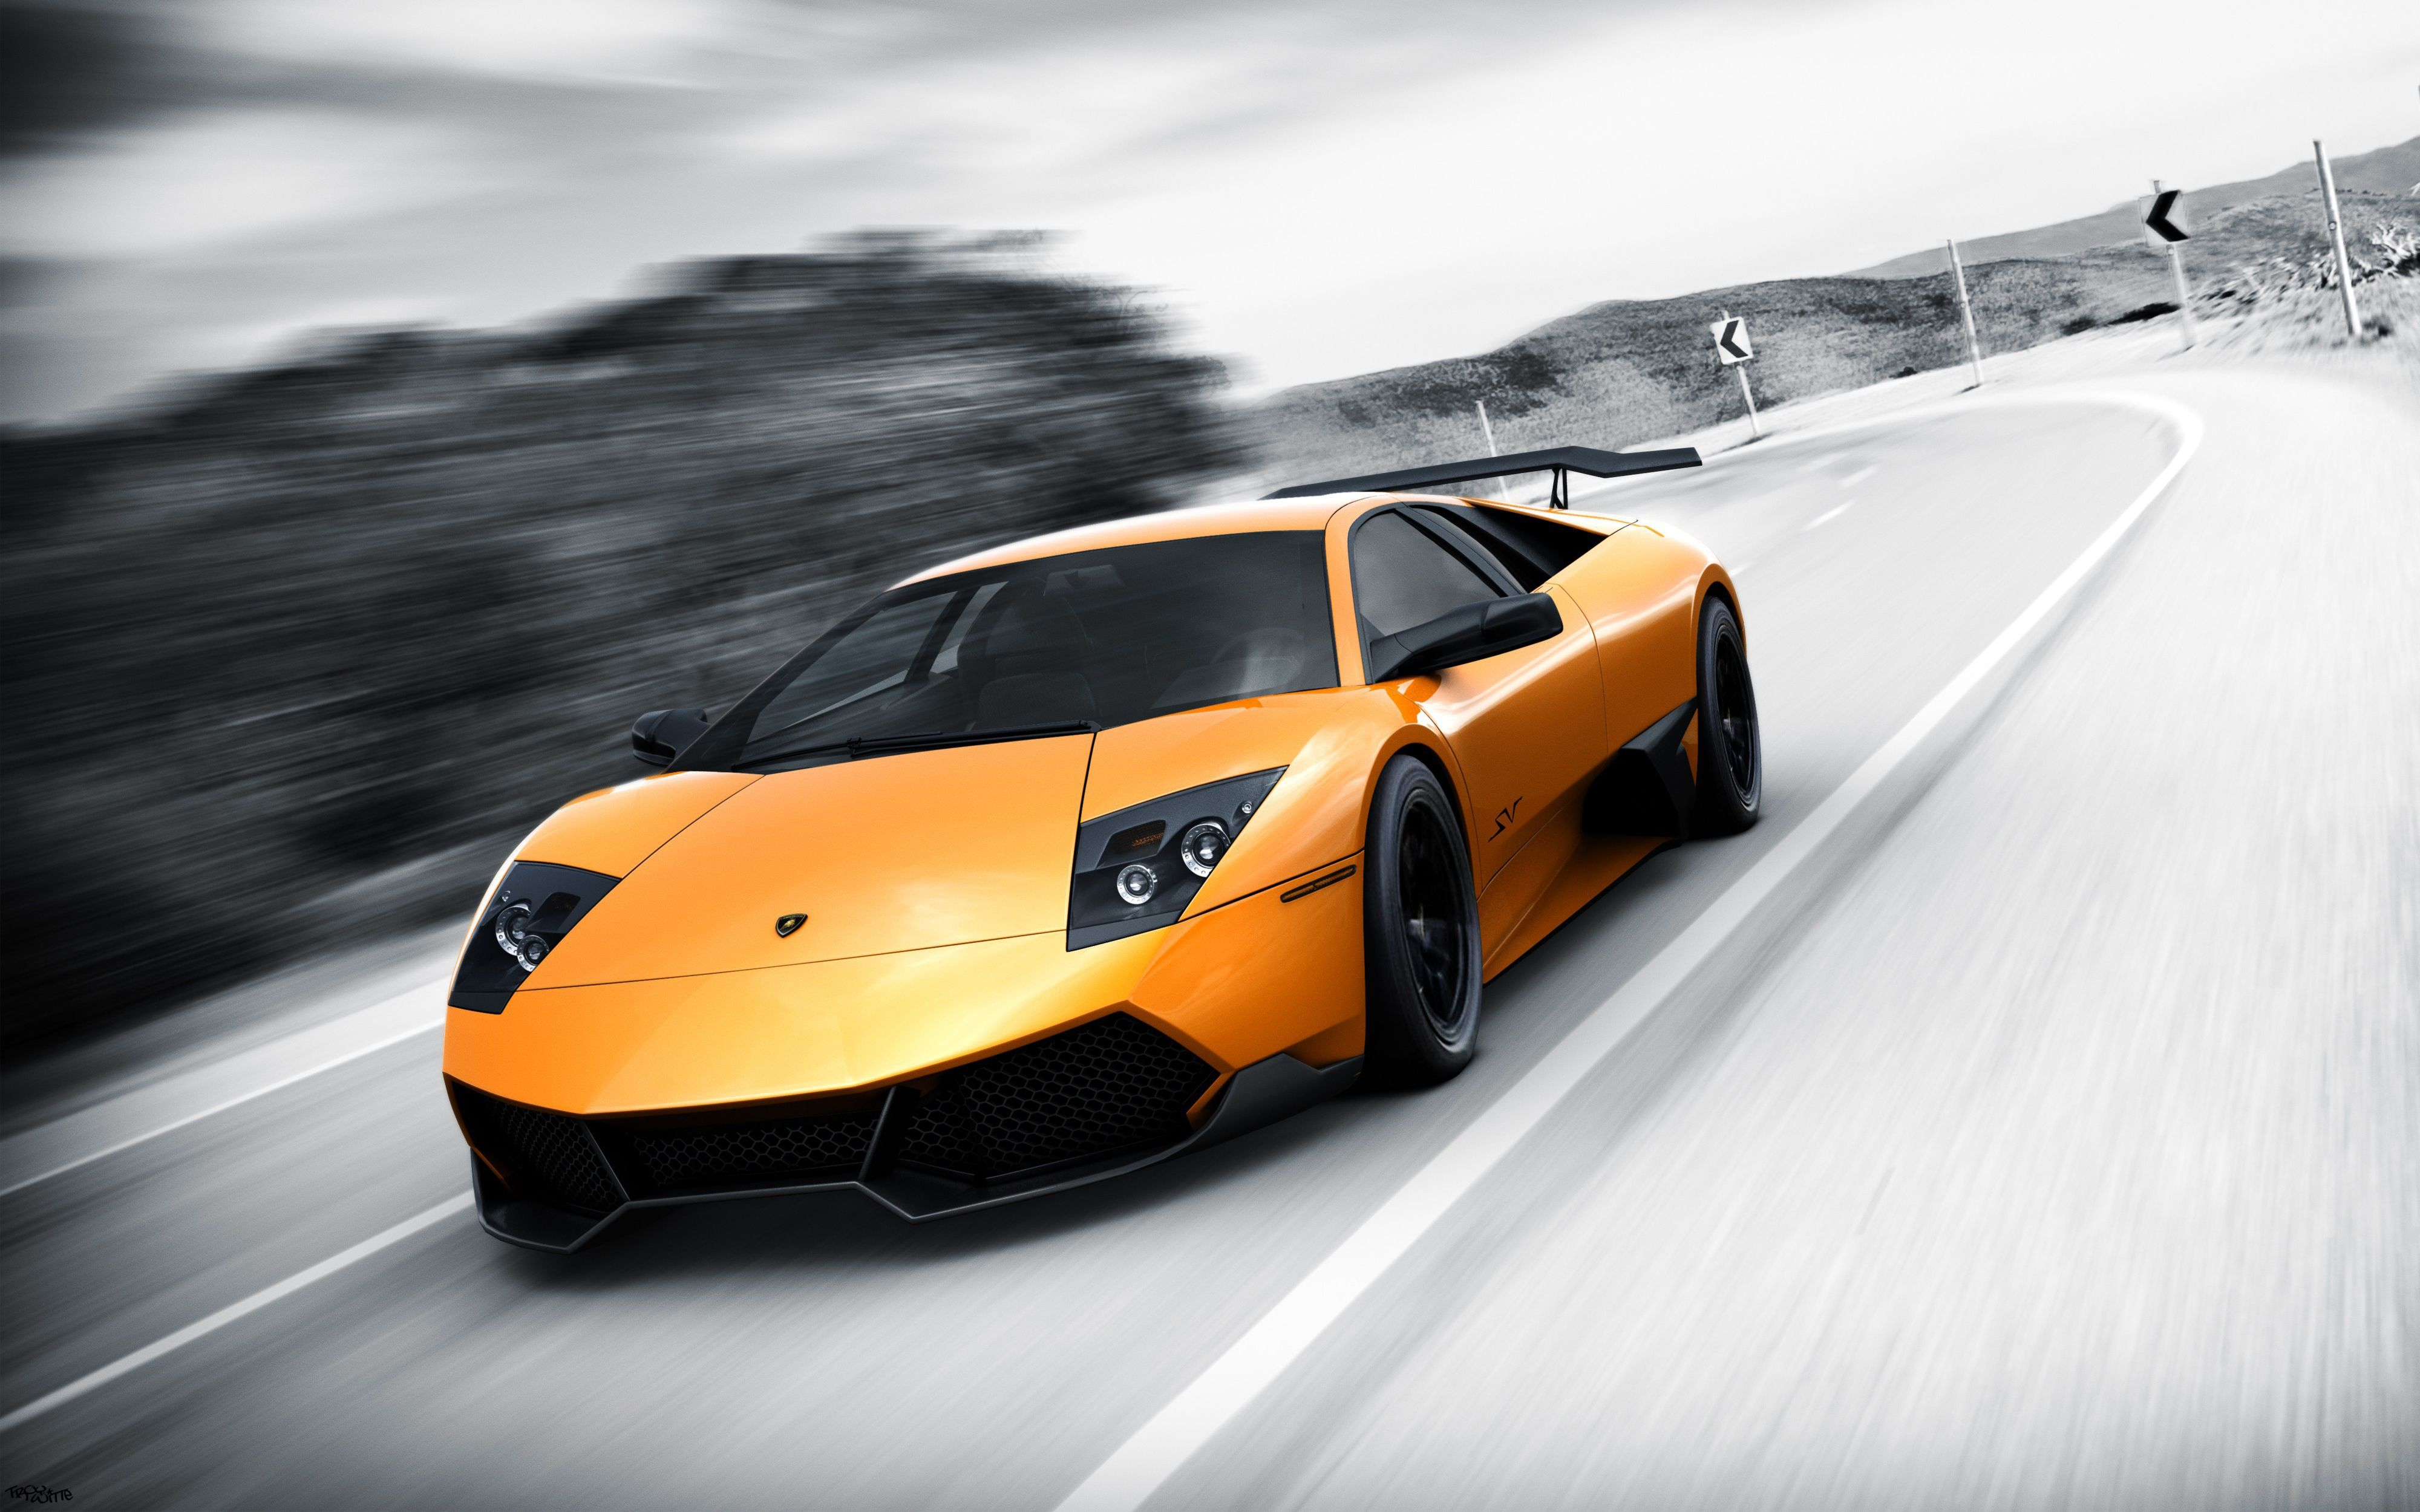 Lamborghini Murcielago Wallpapers , Top Free Lamborghini